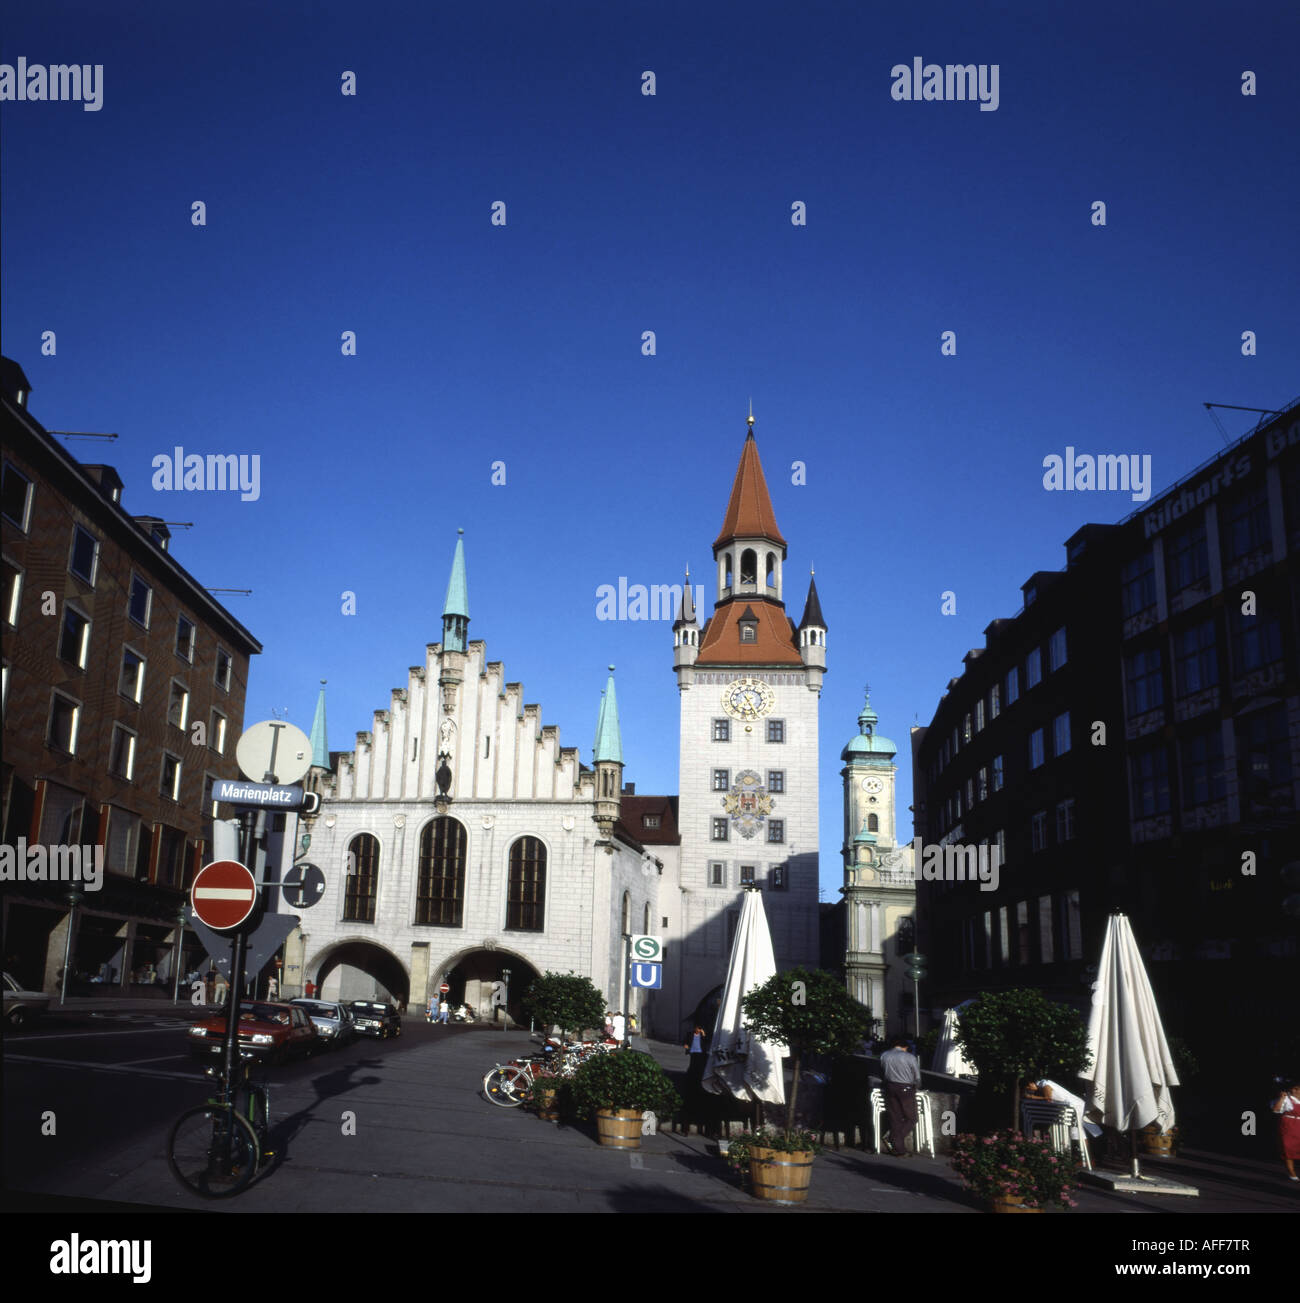 Old Town Hall (1474 ), Munich, Germany - Stock Image